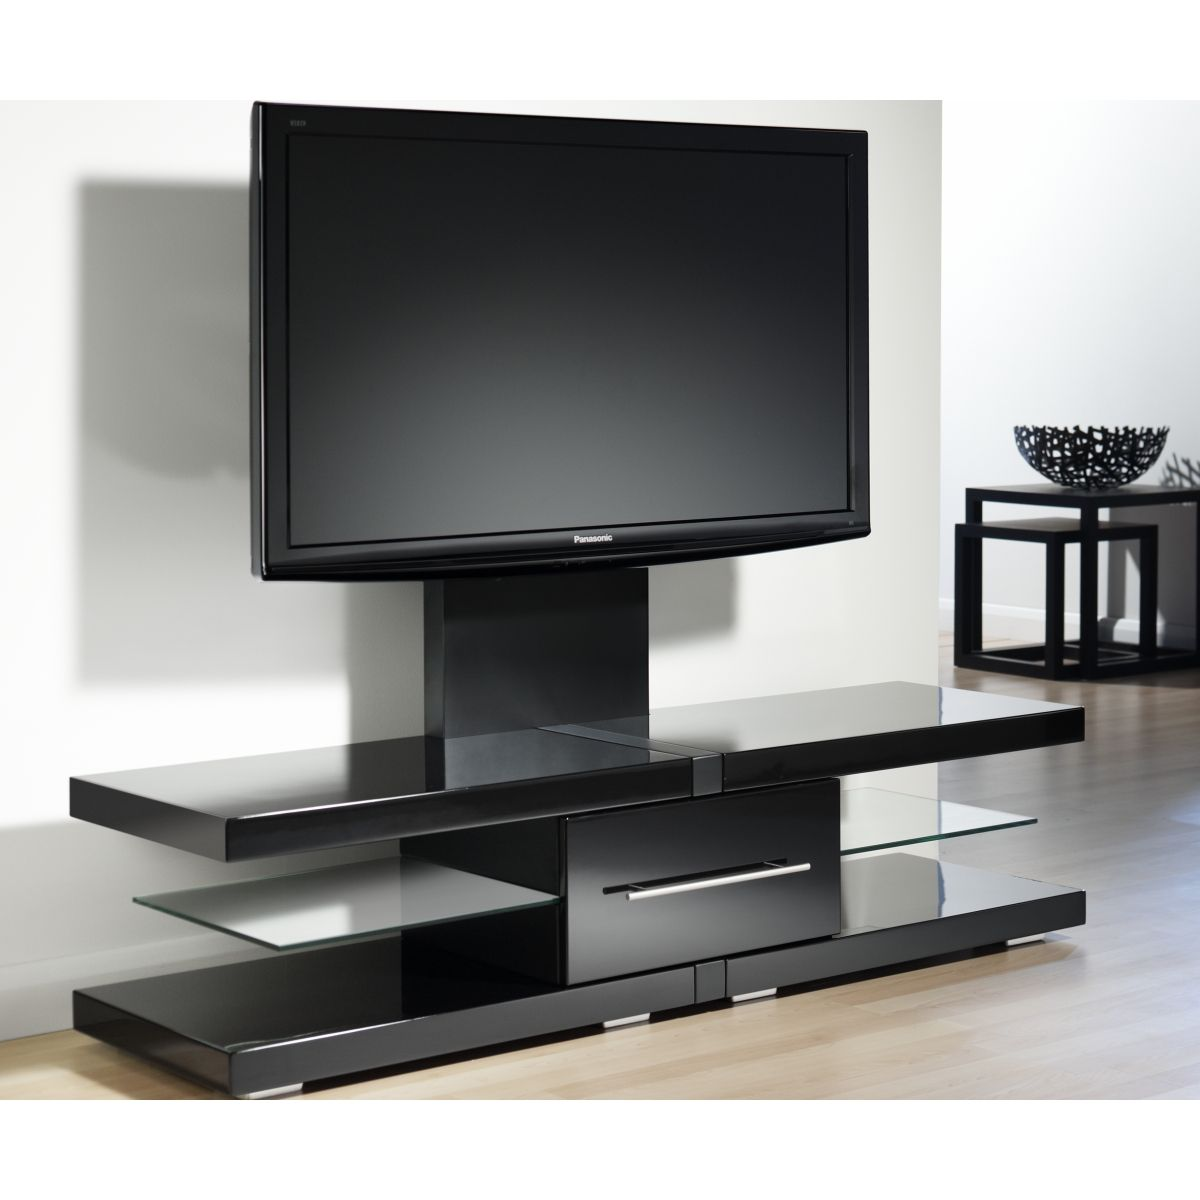 Flat Screen Tv Stands Top 10 Best Tv Stand With Mount Ideas In 2019 Reviews Tv Stand